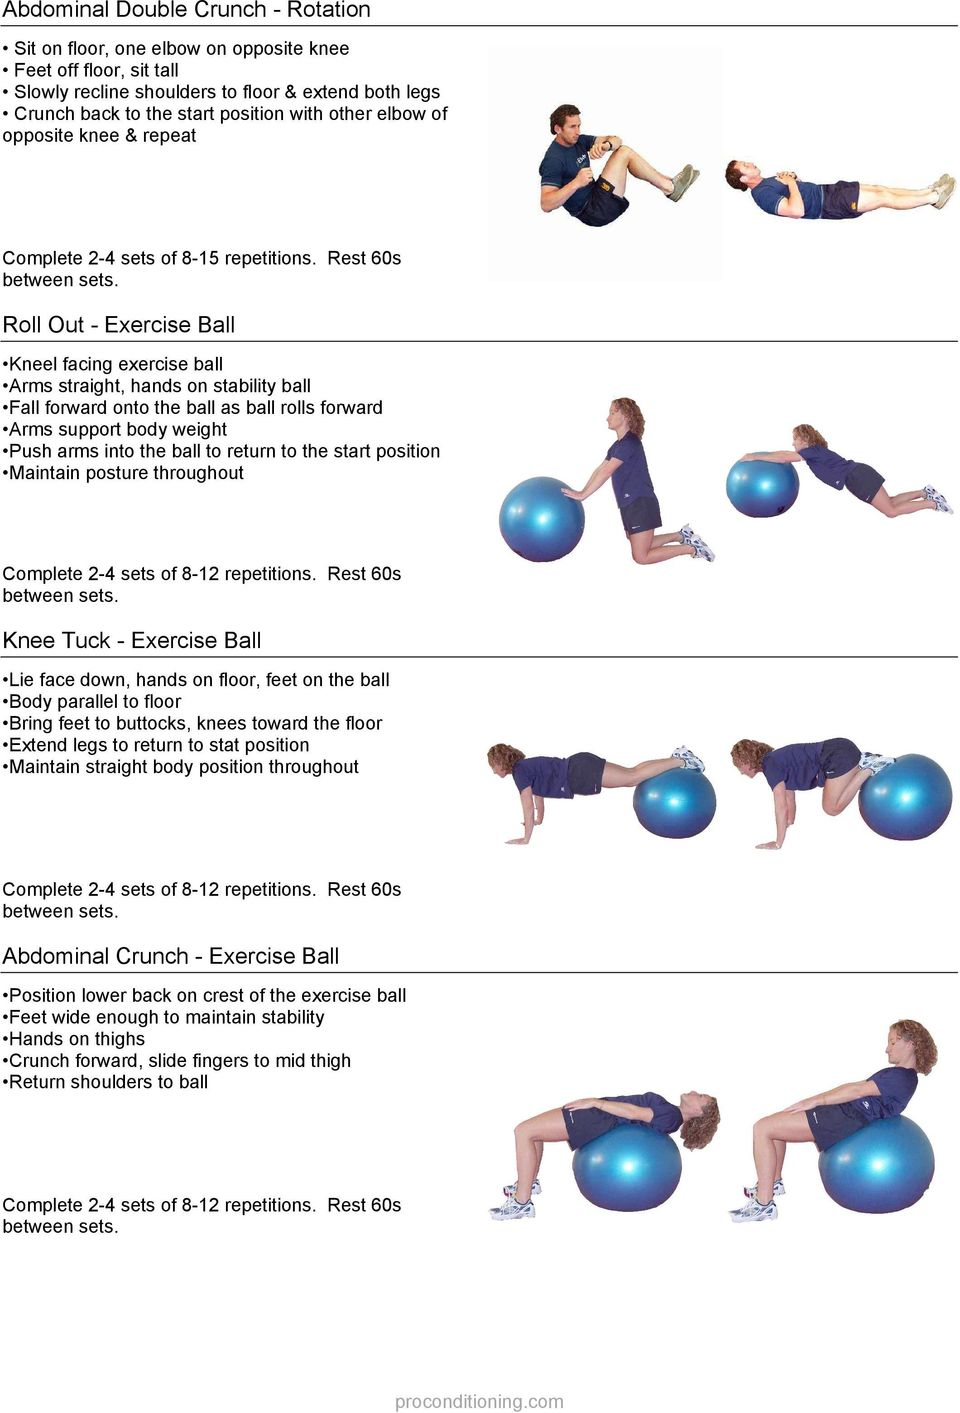 Rest 60s Roll Out - Exercise Ball Kneel facing exercise ball Arms straight, hands on stability ball Fall forward onto the ball as ball rolls forward Arms support body weight Push arms into the ball